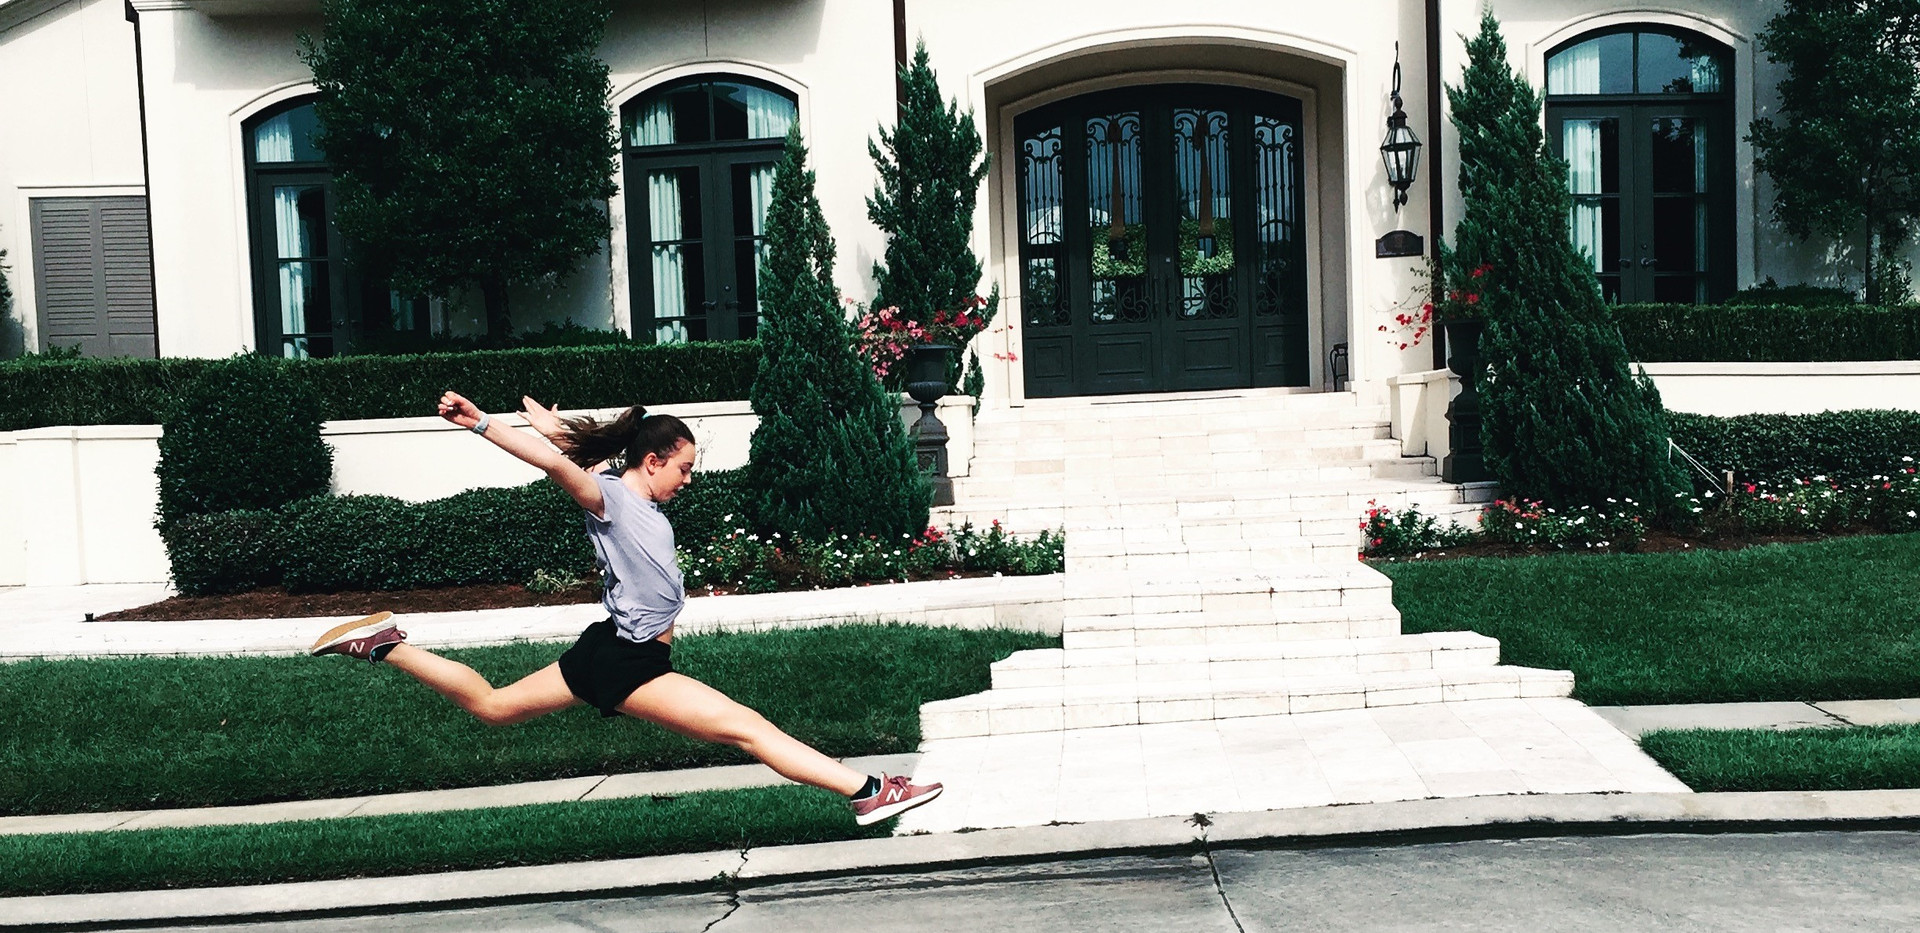 Passion leap infront of house.jpg